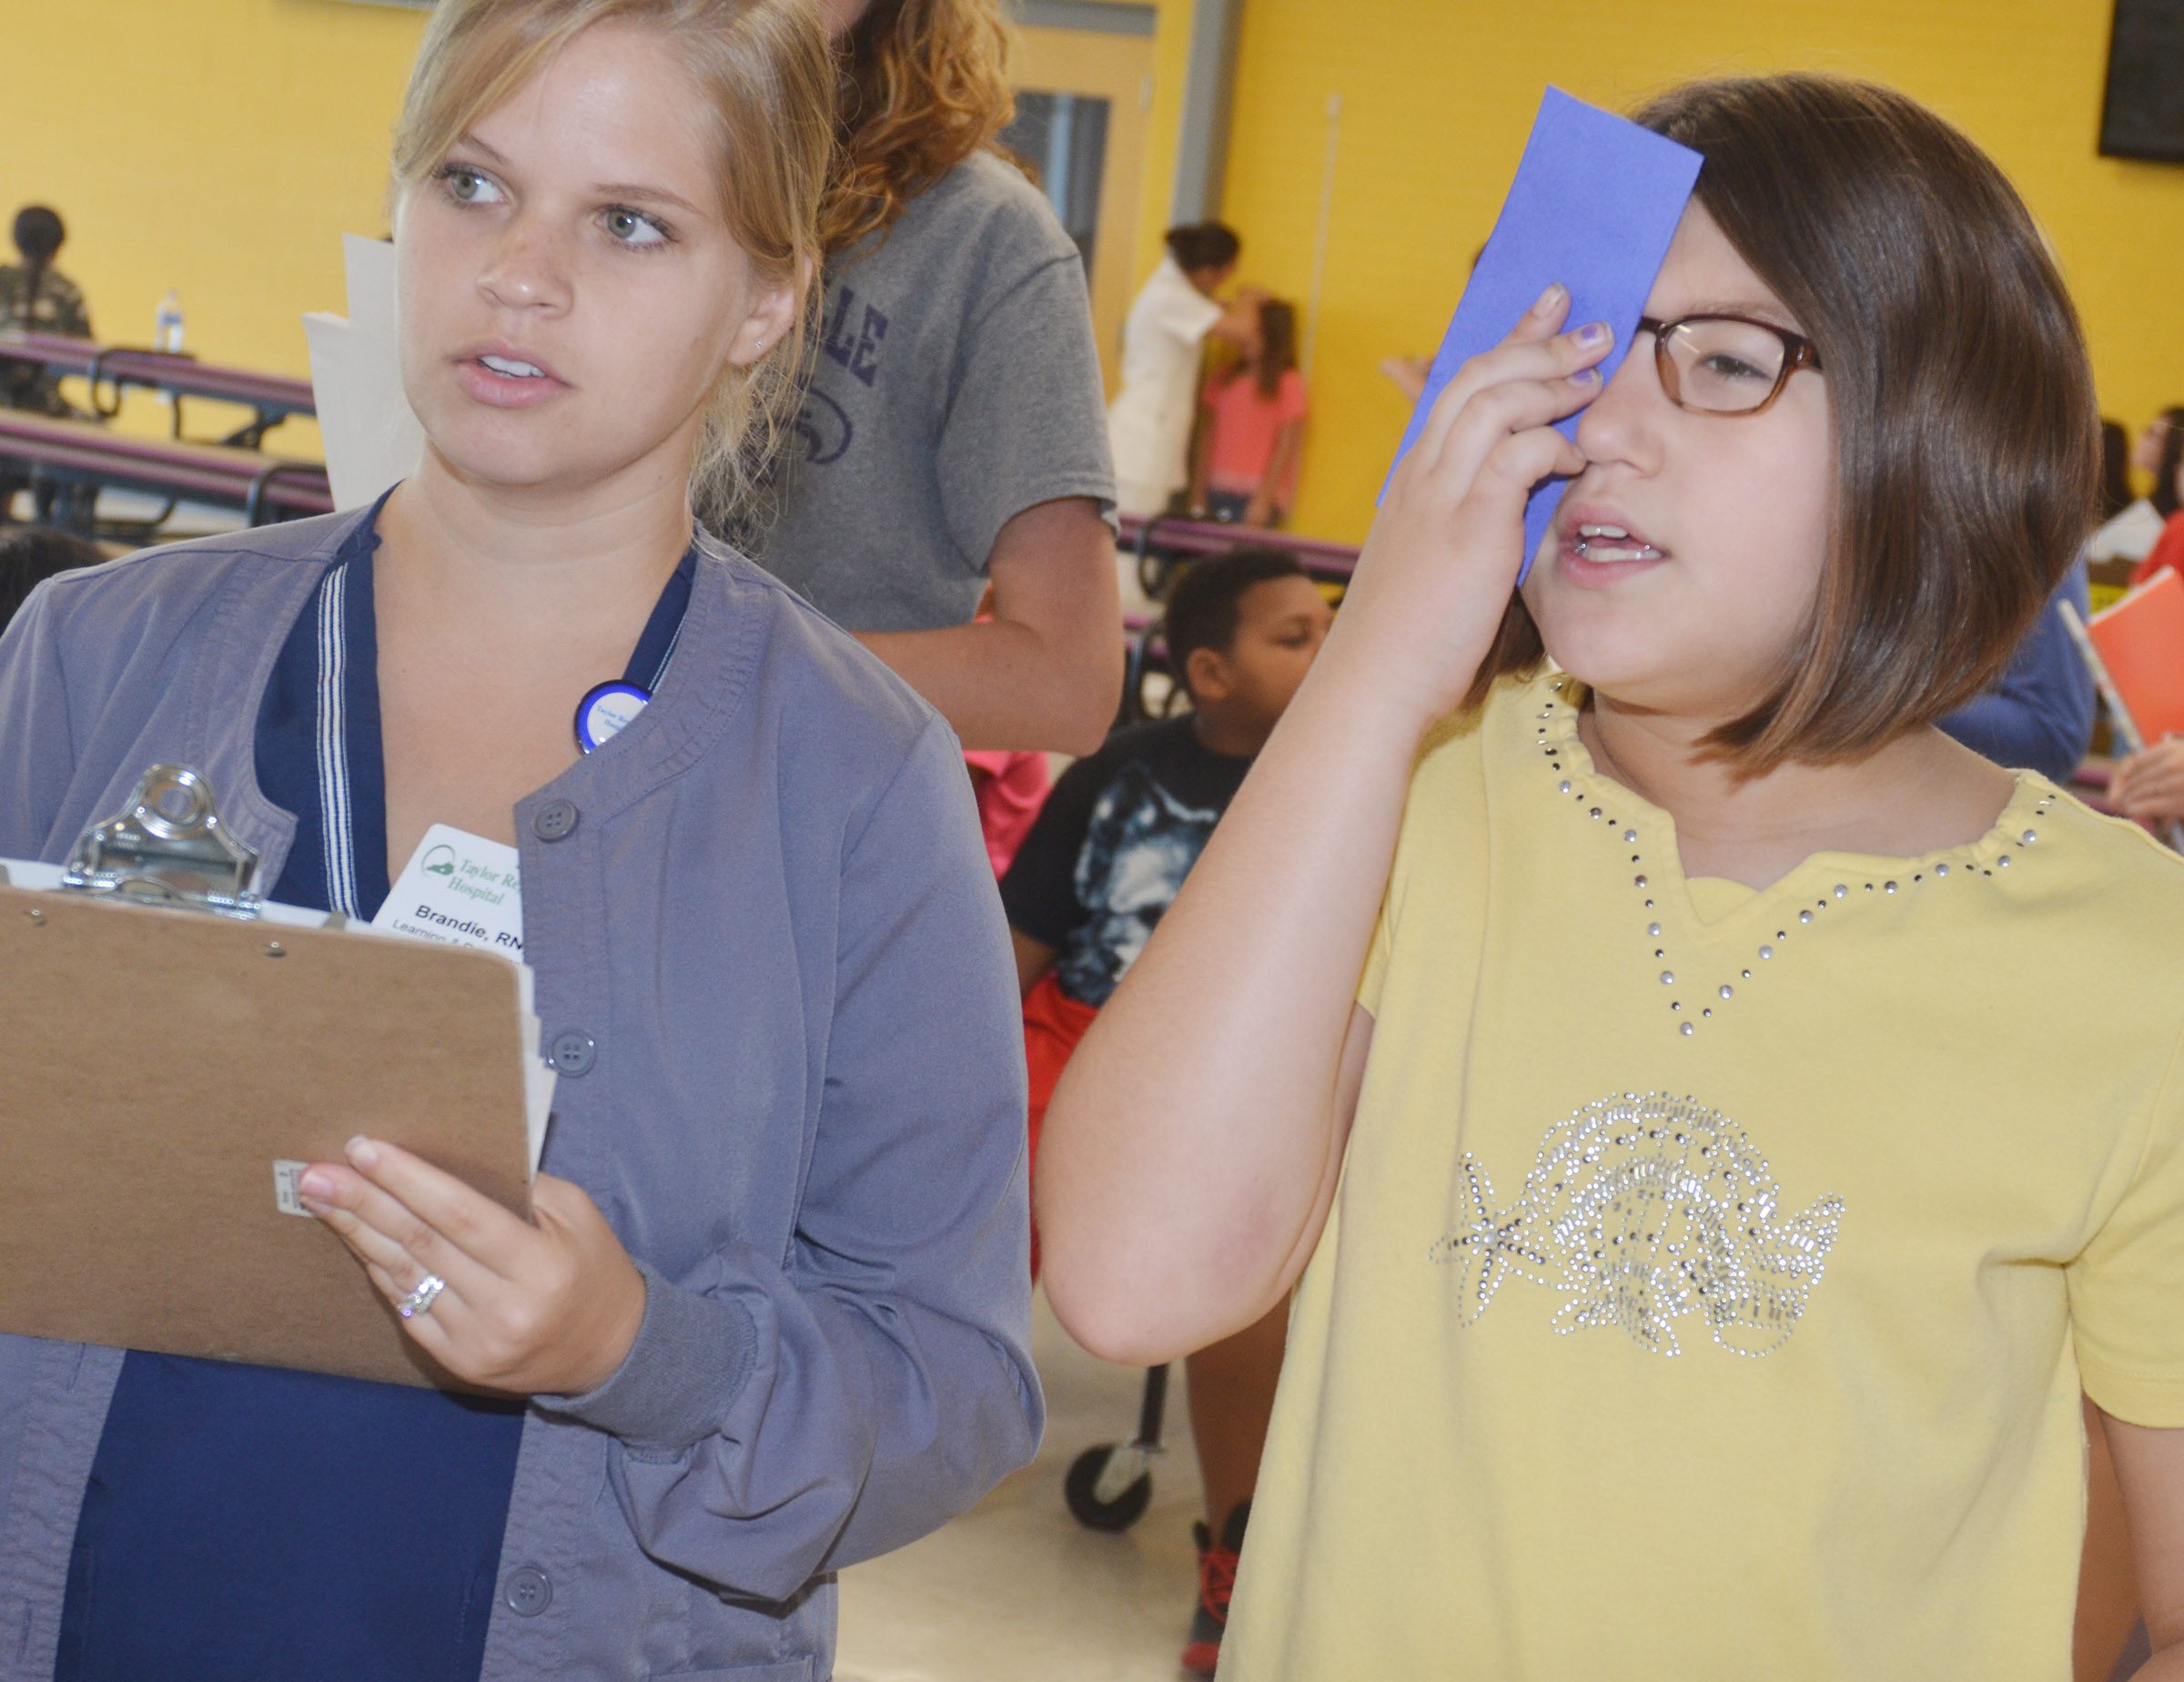 CES fifth-grader Kylee Sowders undergoes an eye exam with Brandie Adams, a registered nurse at Taylor Regional Hospital.